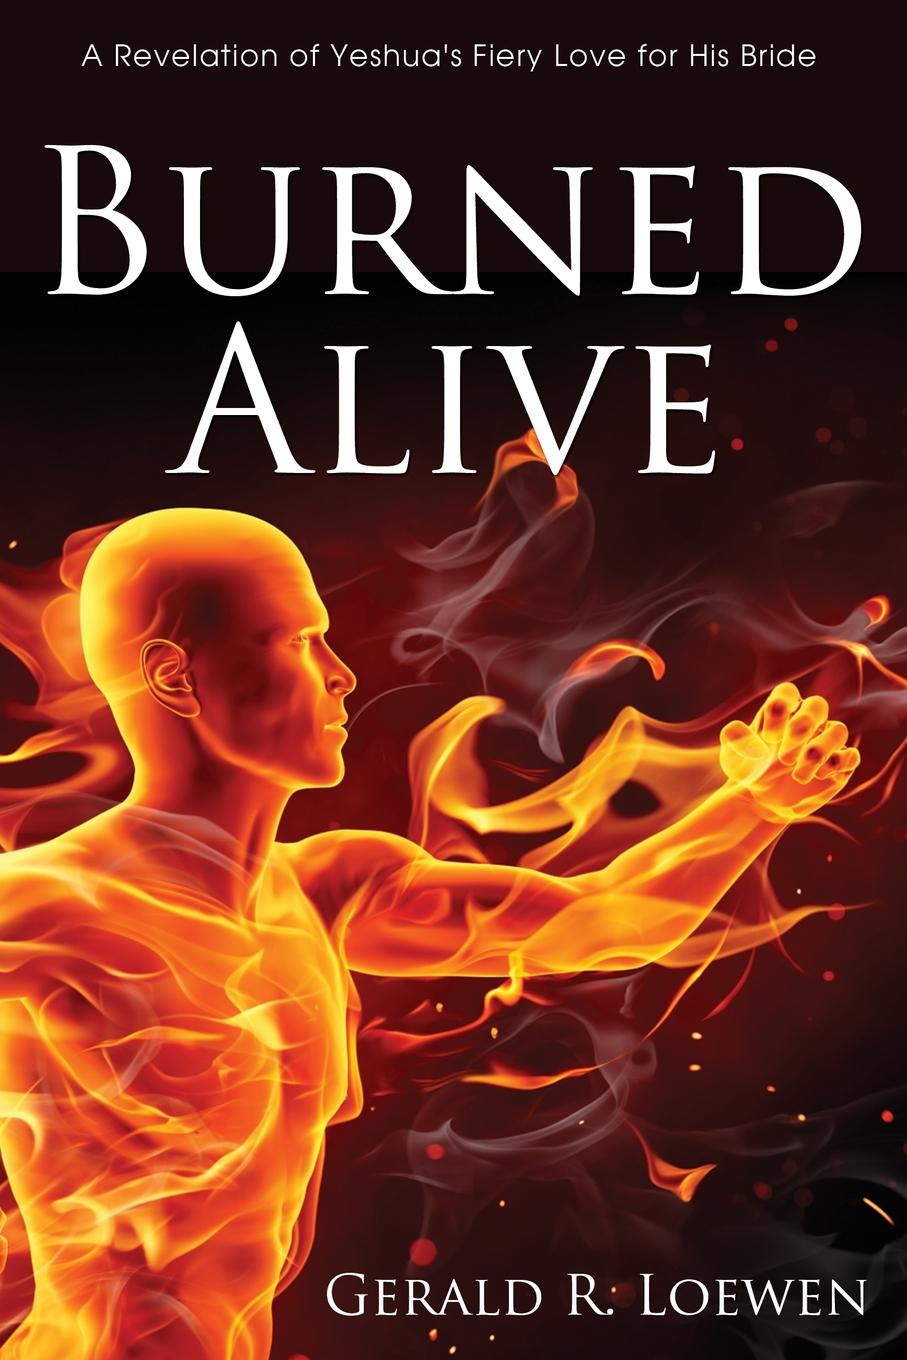 Gerald R. Loewen Burned Alive. A Revelation of Yeshua's Fiery Love for His Bride the german bride